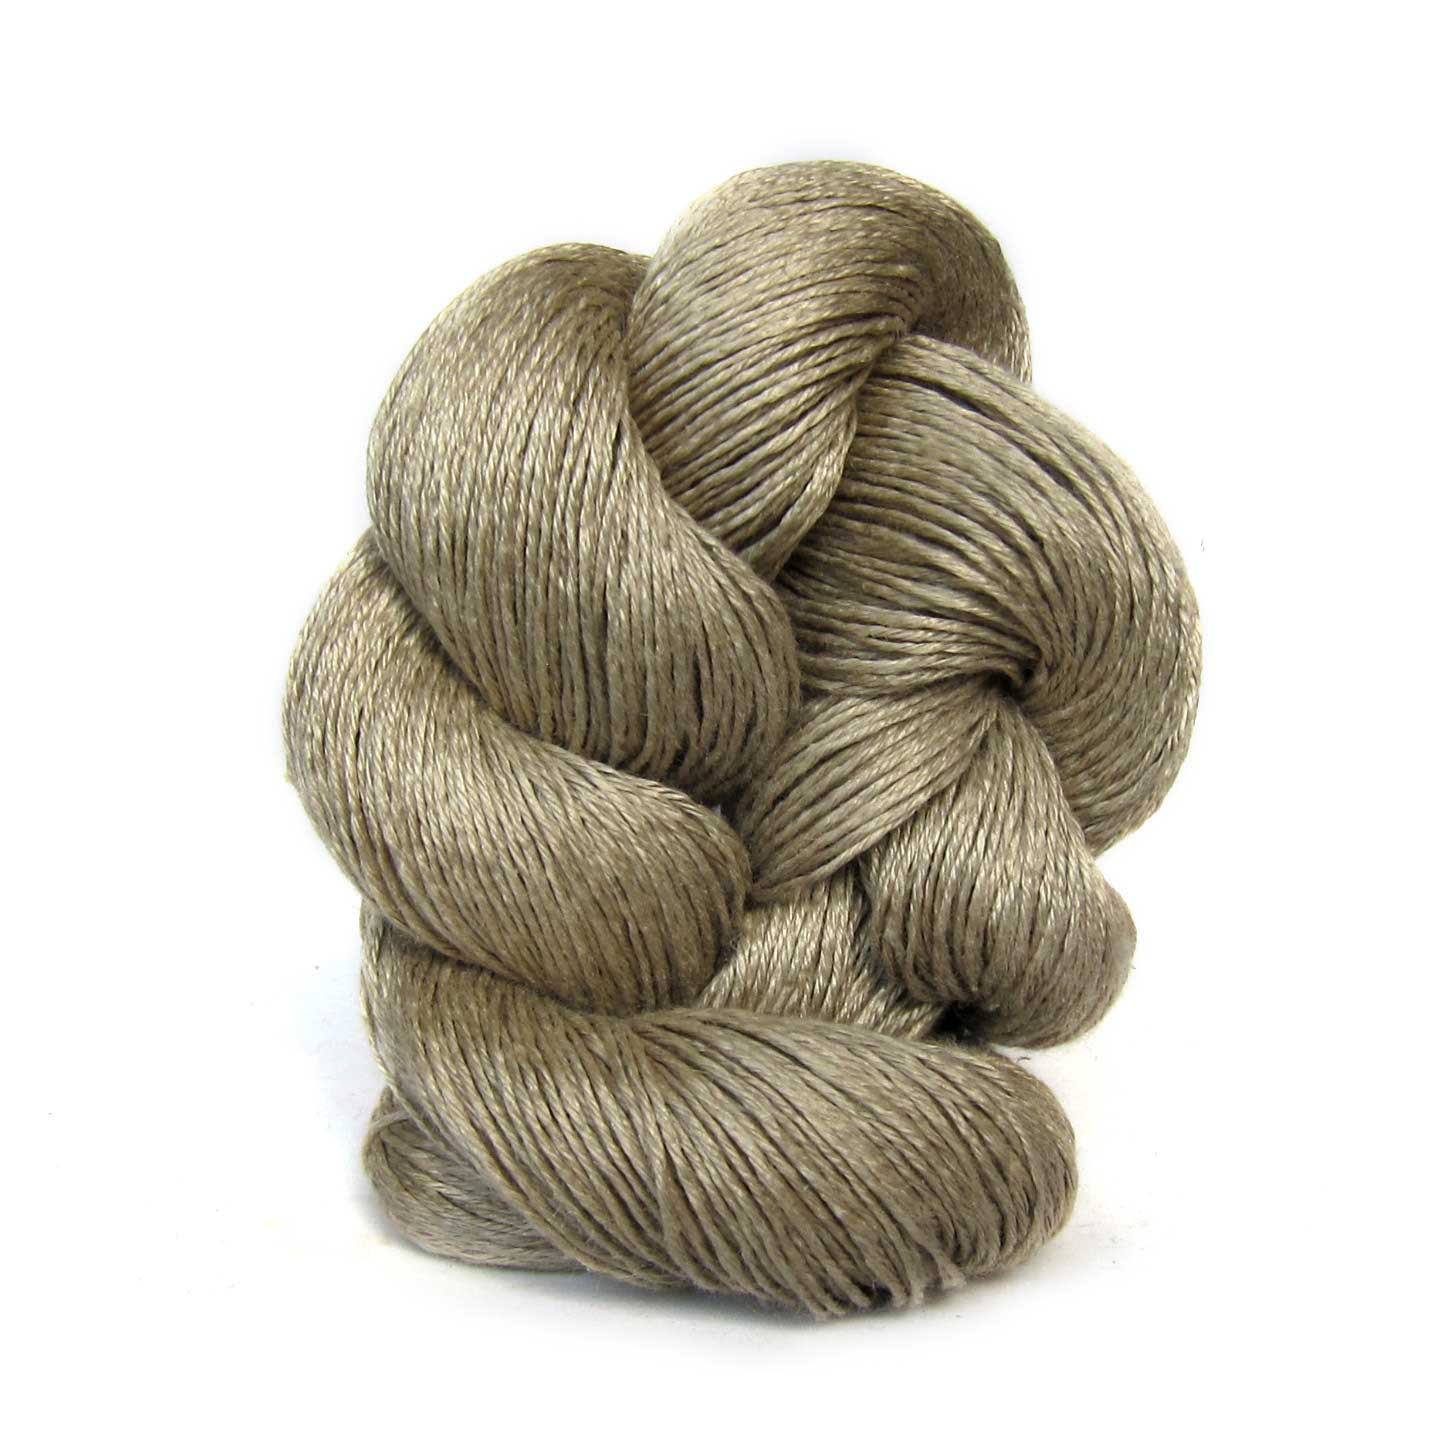 Natural Louet Euroflax Linen Yarn